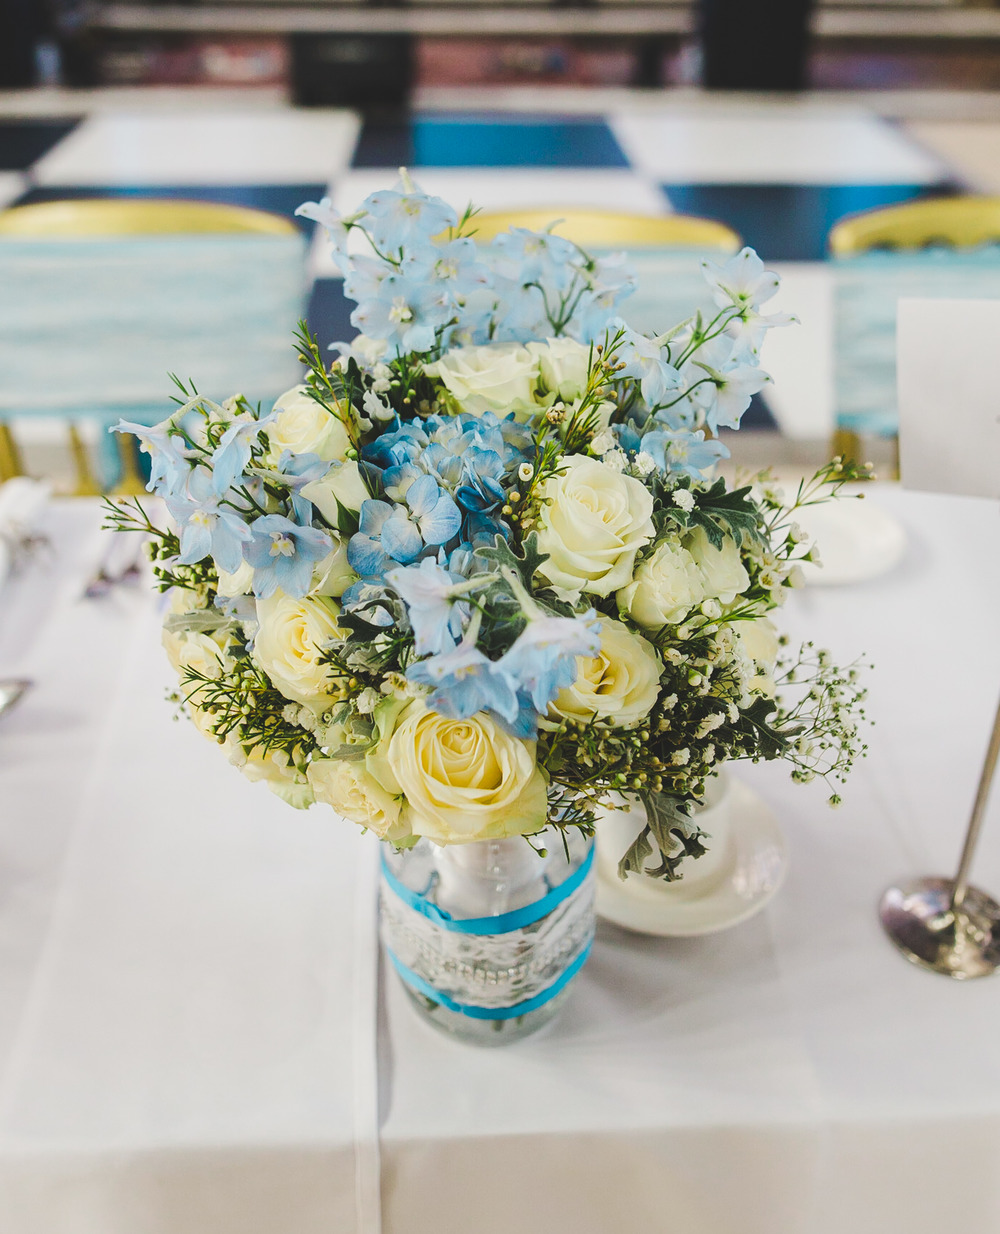 The table arrangement- Wedding photographer in manchester